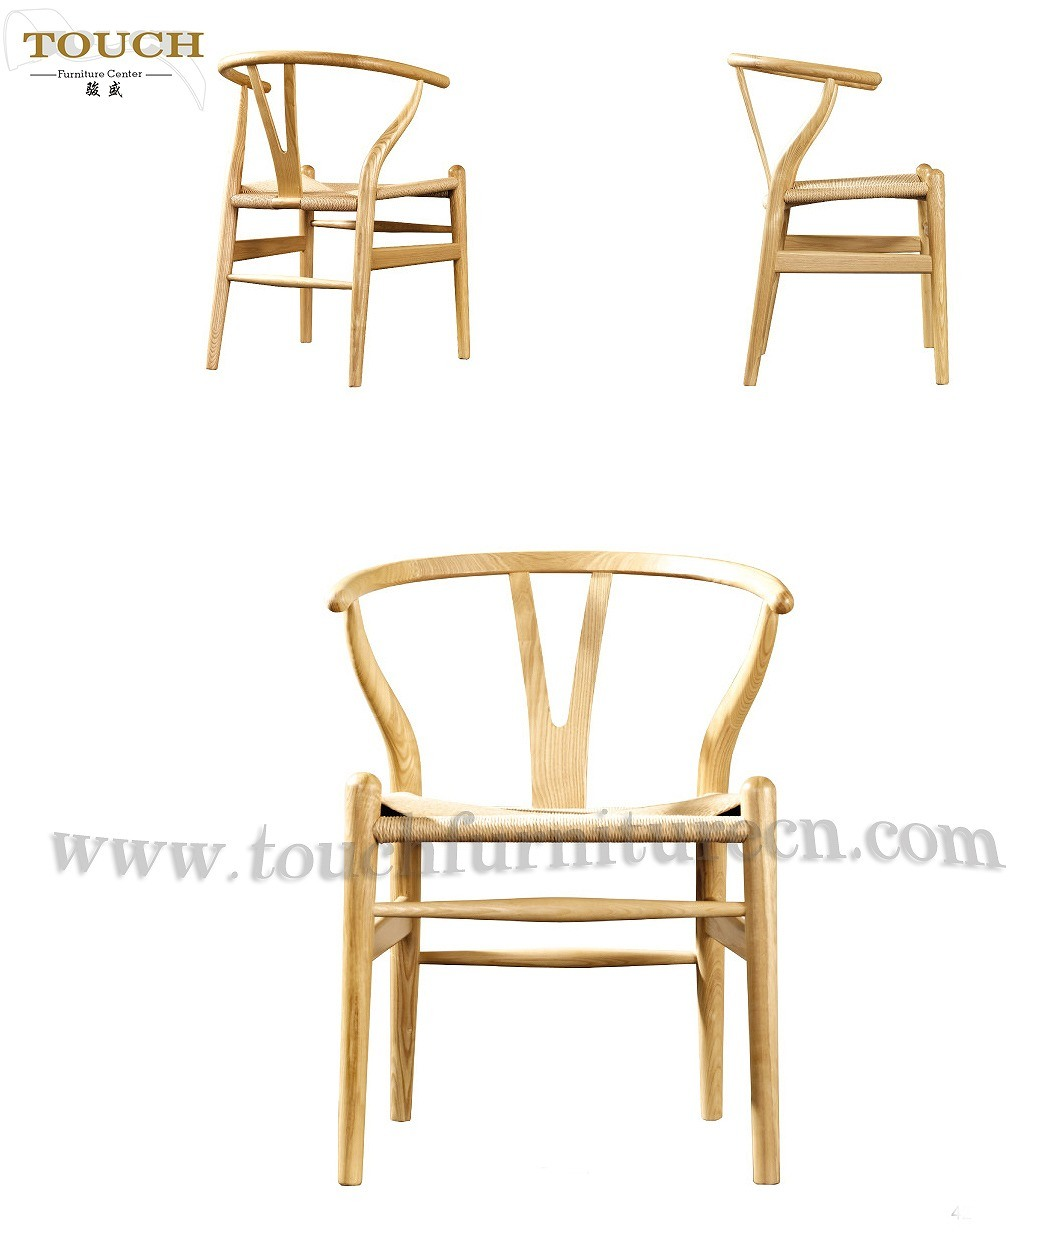 china wooden chair y chair dining chair js c819 china y chair wooden chair. Black Bedroom Furniture Sets. Home Design Ideas